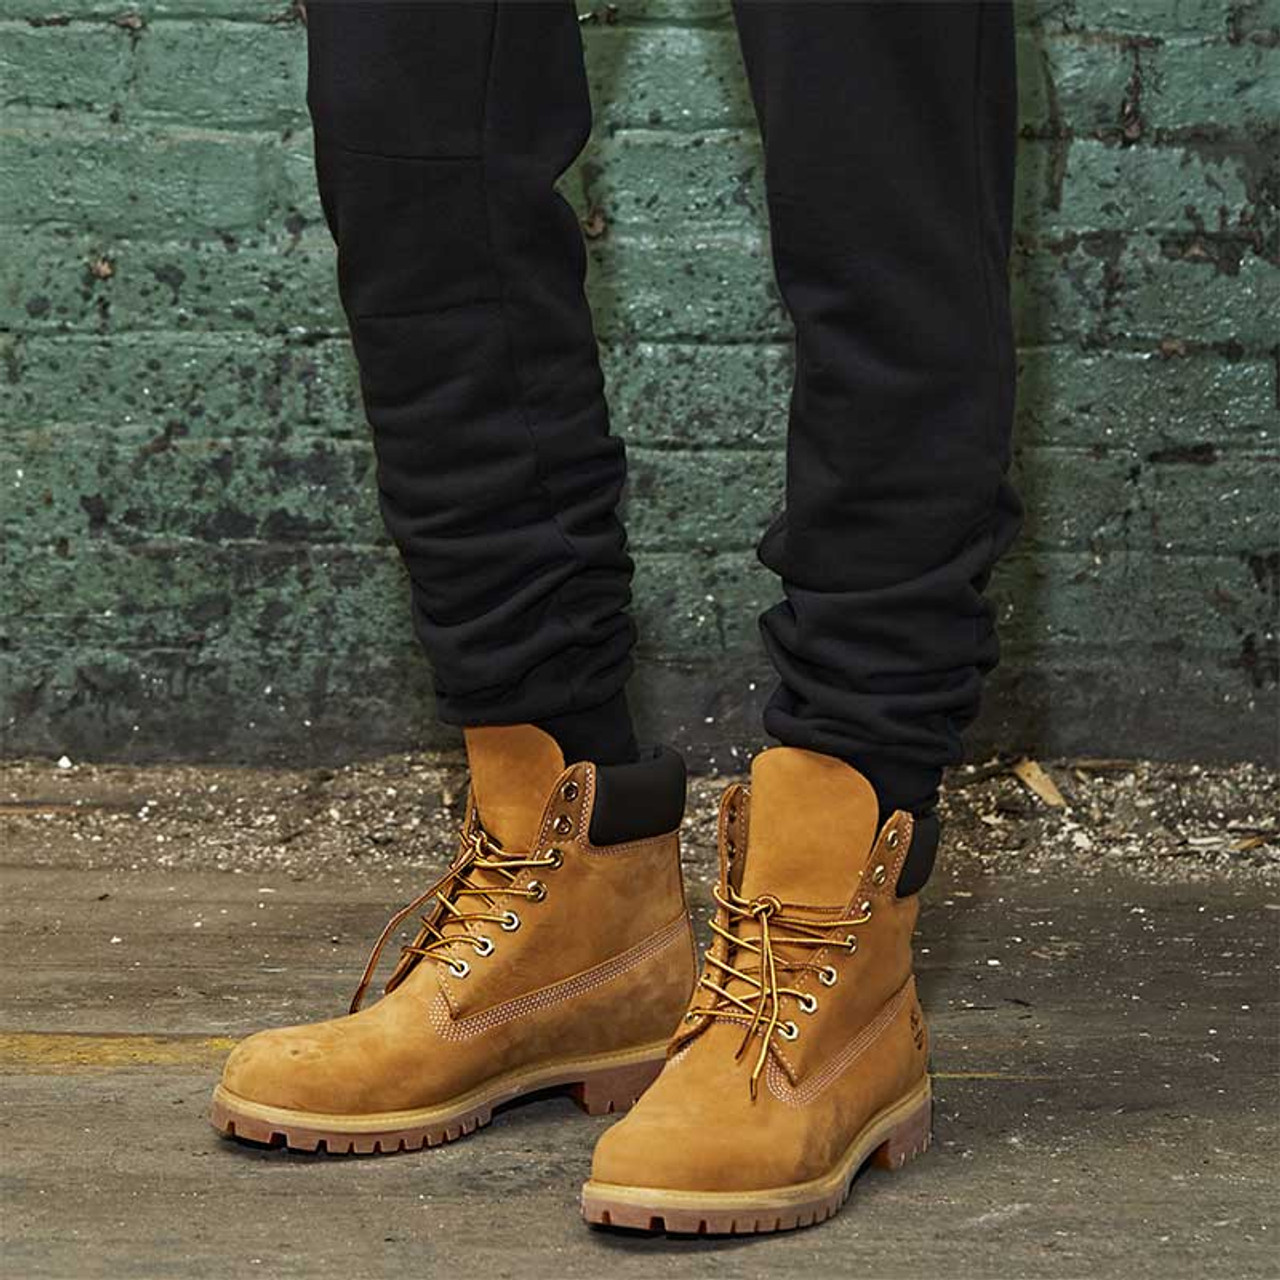 máximo Alcalde Inclinado  Timberland 10061 ICON Premium Leather Work Boots - Family Footwear Center